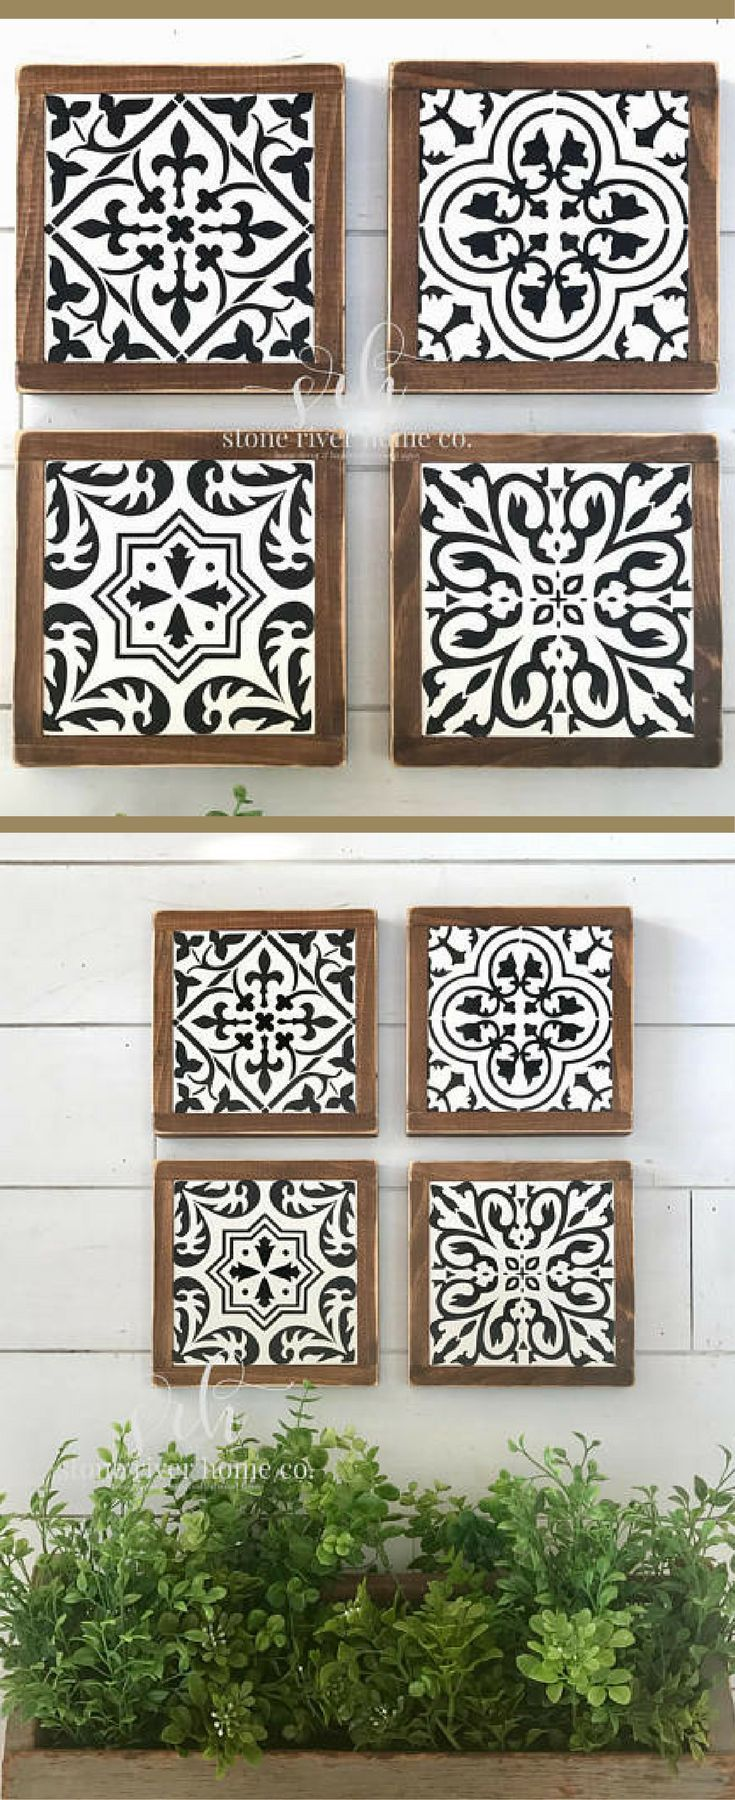 These would looks so good in a bathroom, dining room, gallery wall... well anywhere! Set of 4 Spanish tiles mini wood signs | wall decor | farmhouse decor | rustic kitchen decor | fixer upper | Gallery wall decor | farmhouse sign | Farmhouse tile signs #ad